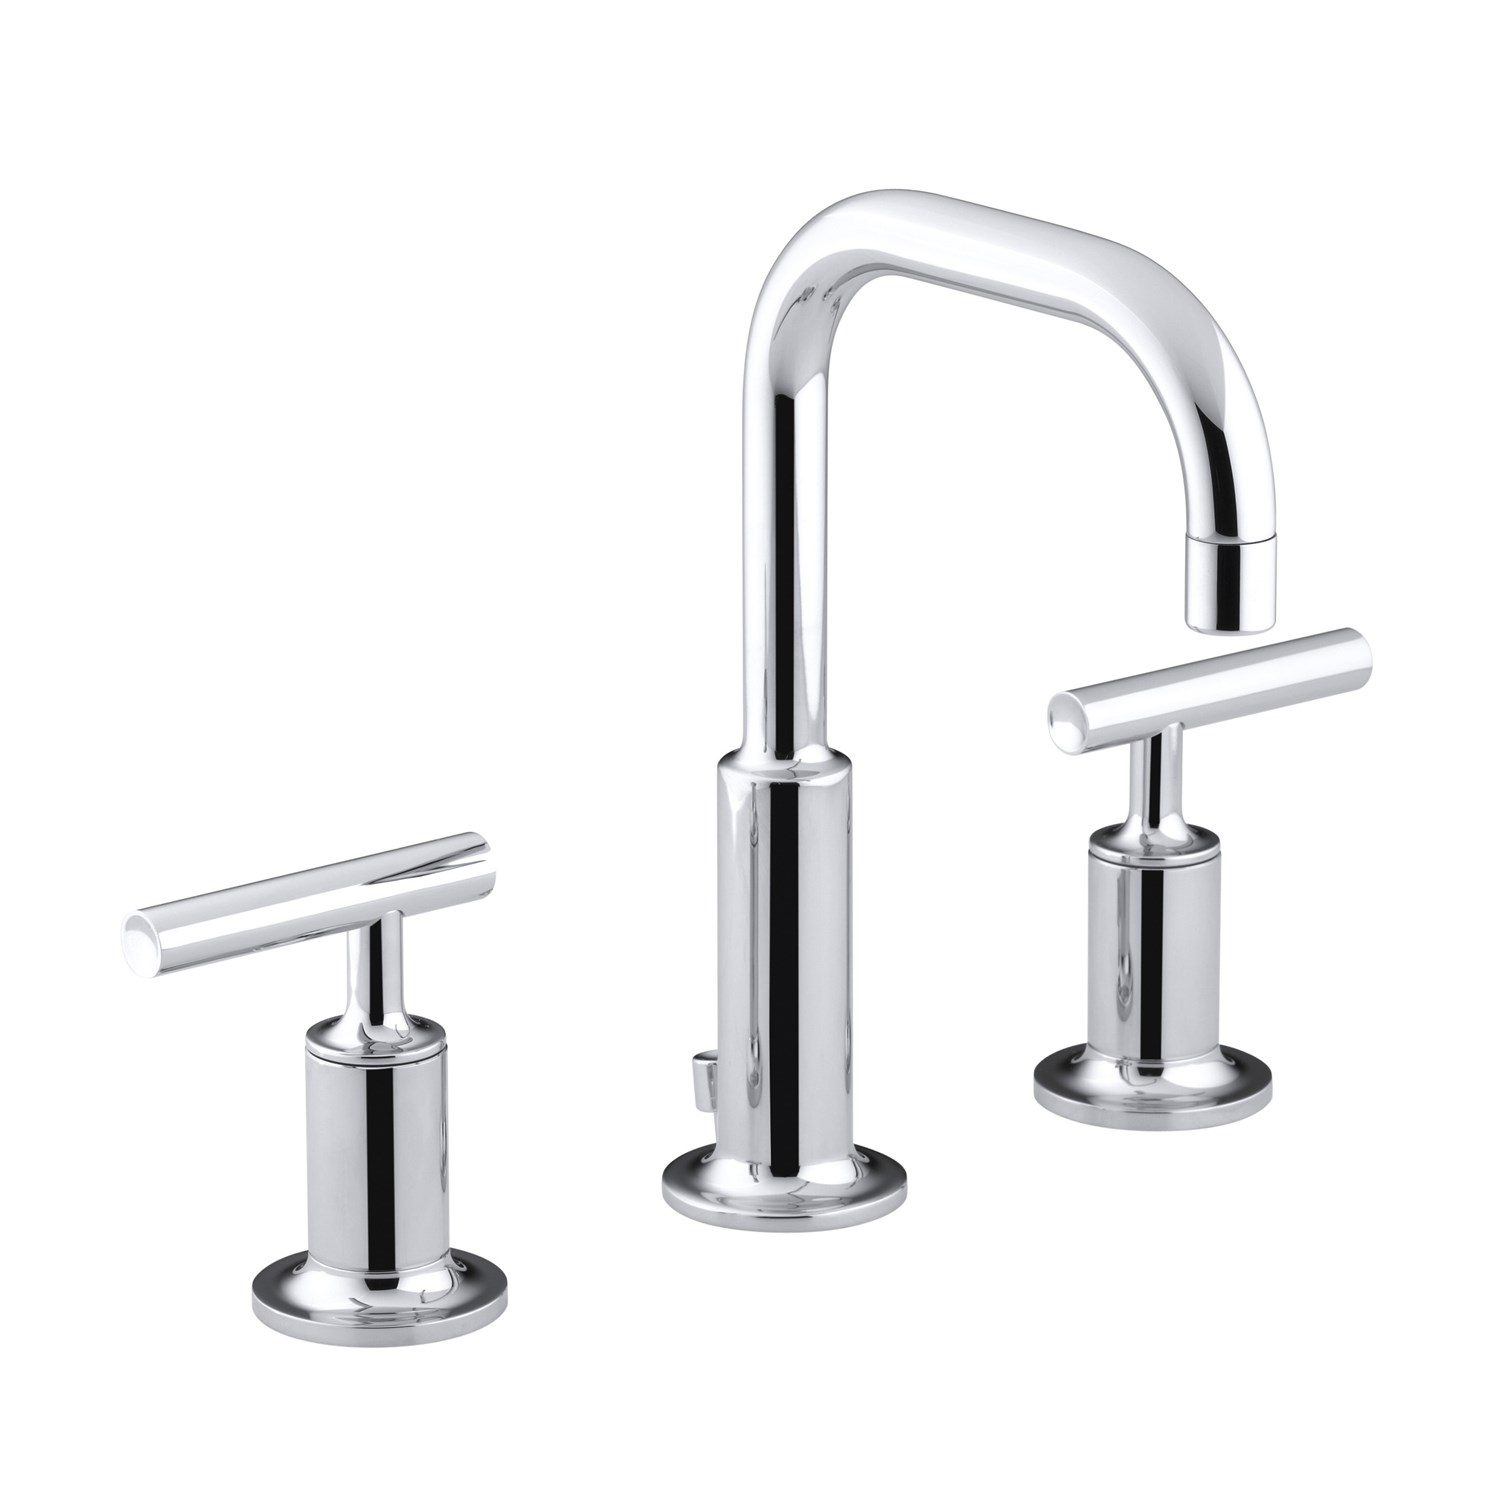 Ideas, kohler revival centerset lavatory faucet kohler revival centerset lavatory faucet top rated bathroom faucets homeclick 1500 x 1500  .